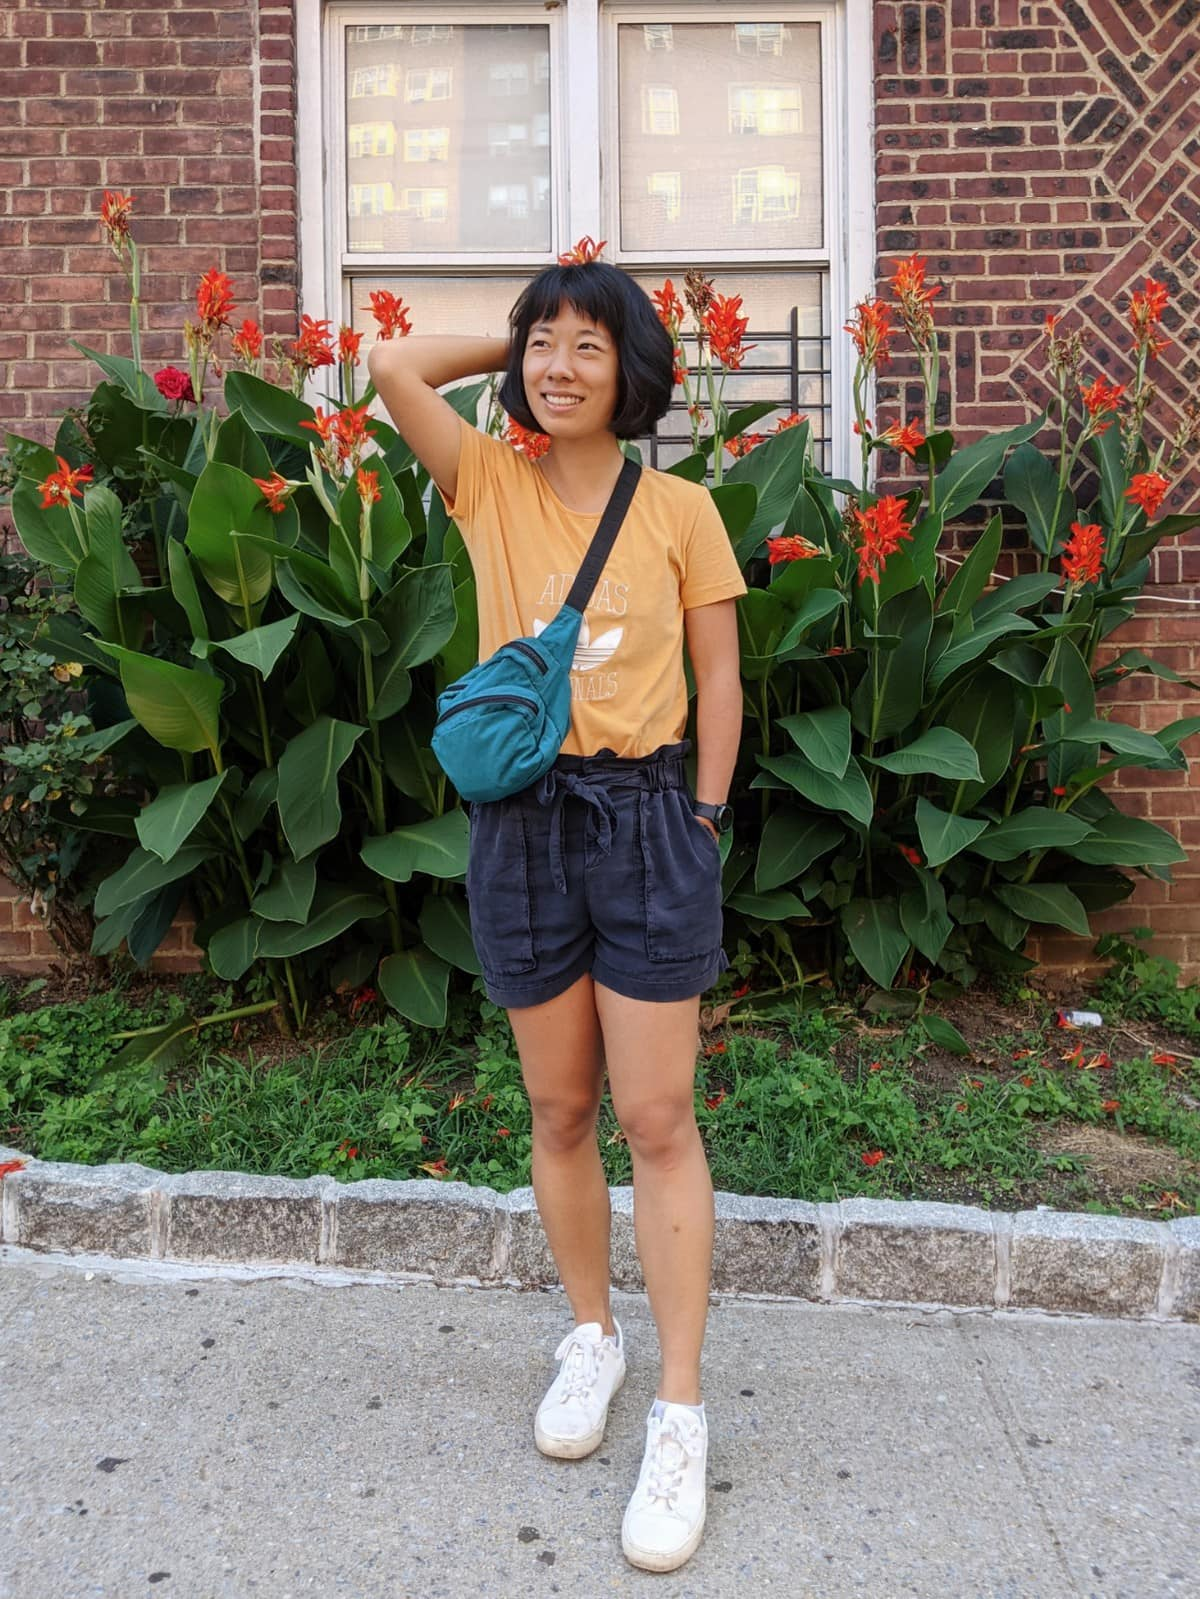 Me wearing a thrifted mustard Adidas tshirt and thrifted navy paper bag shorts with a teal fanny pack as a side body bag, standing in front of large flowers